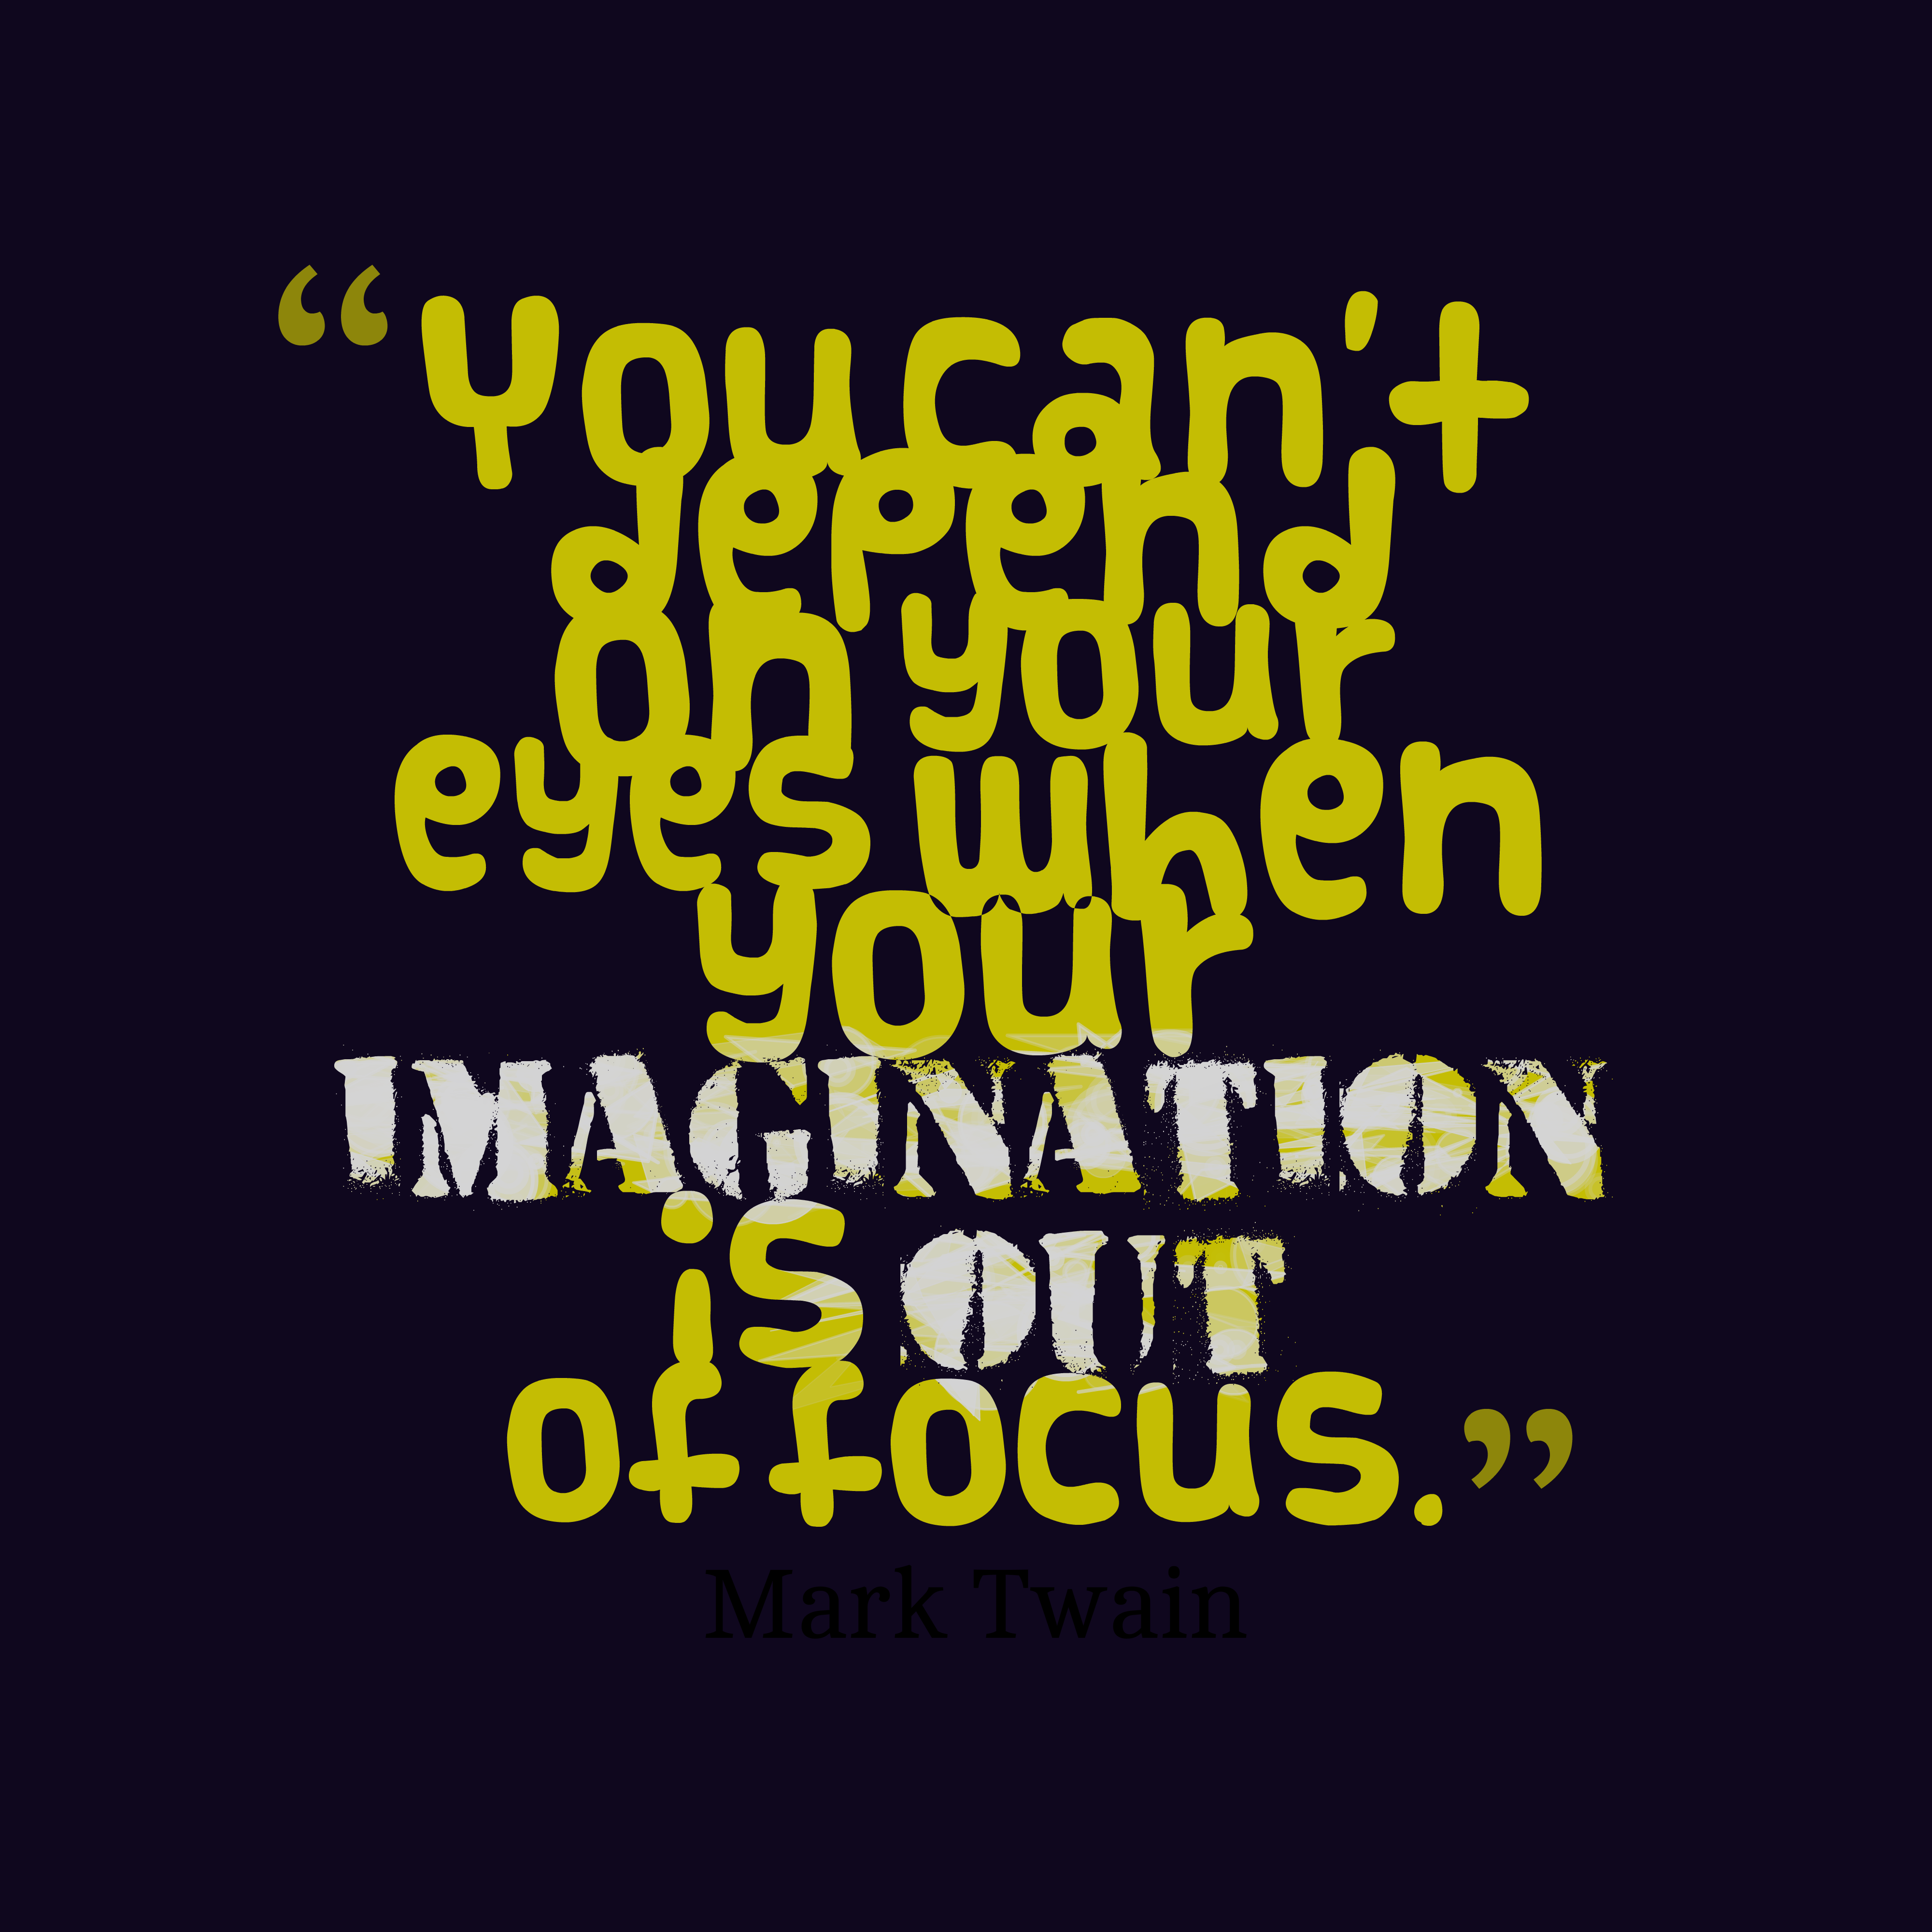 Picture » Mark Twain Quote About Imagination